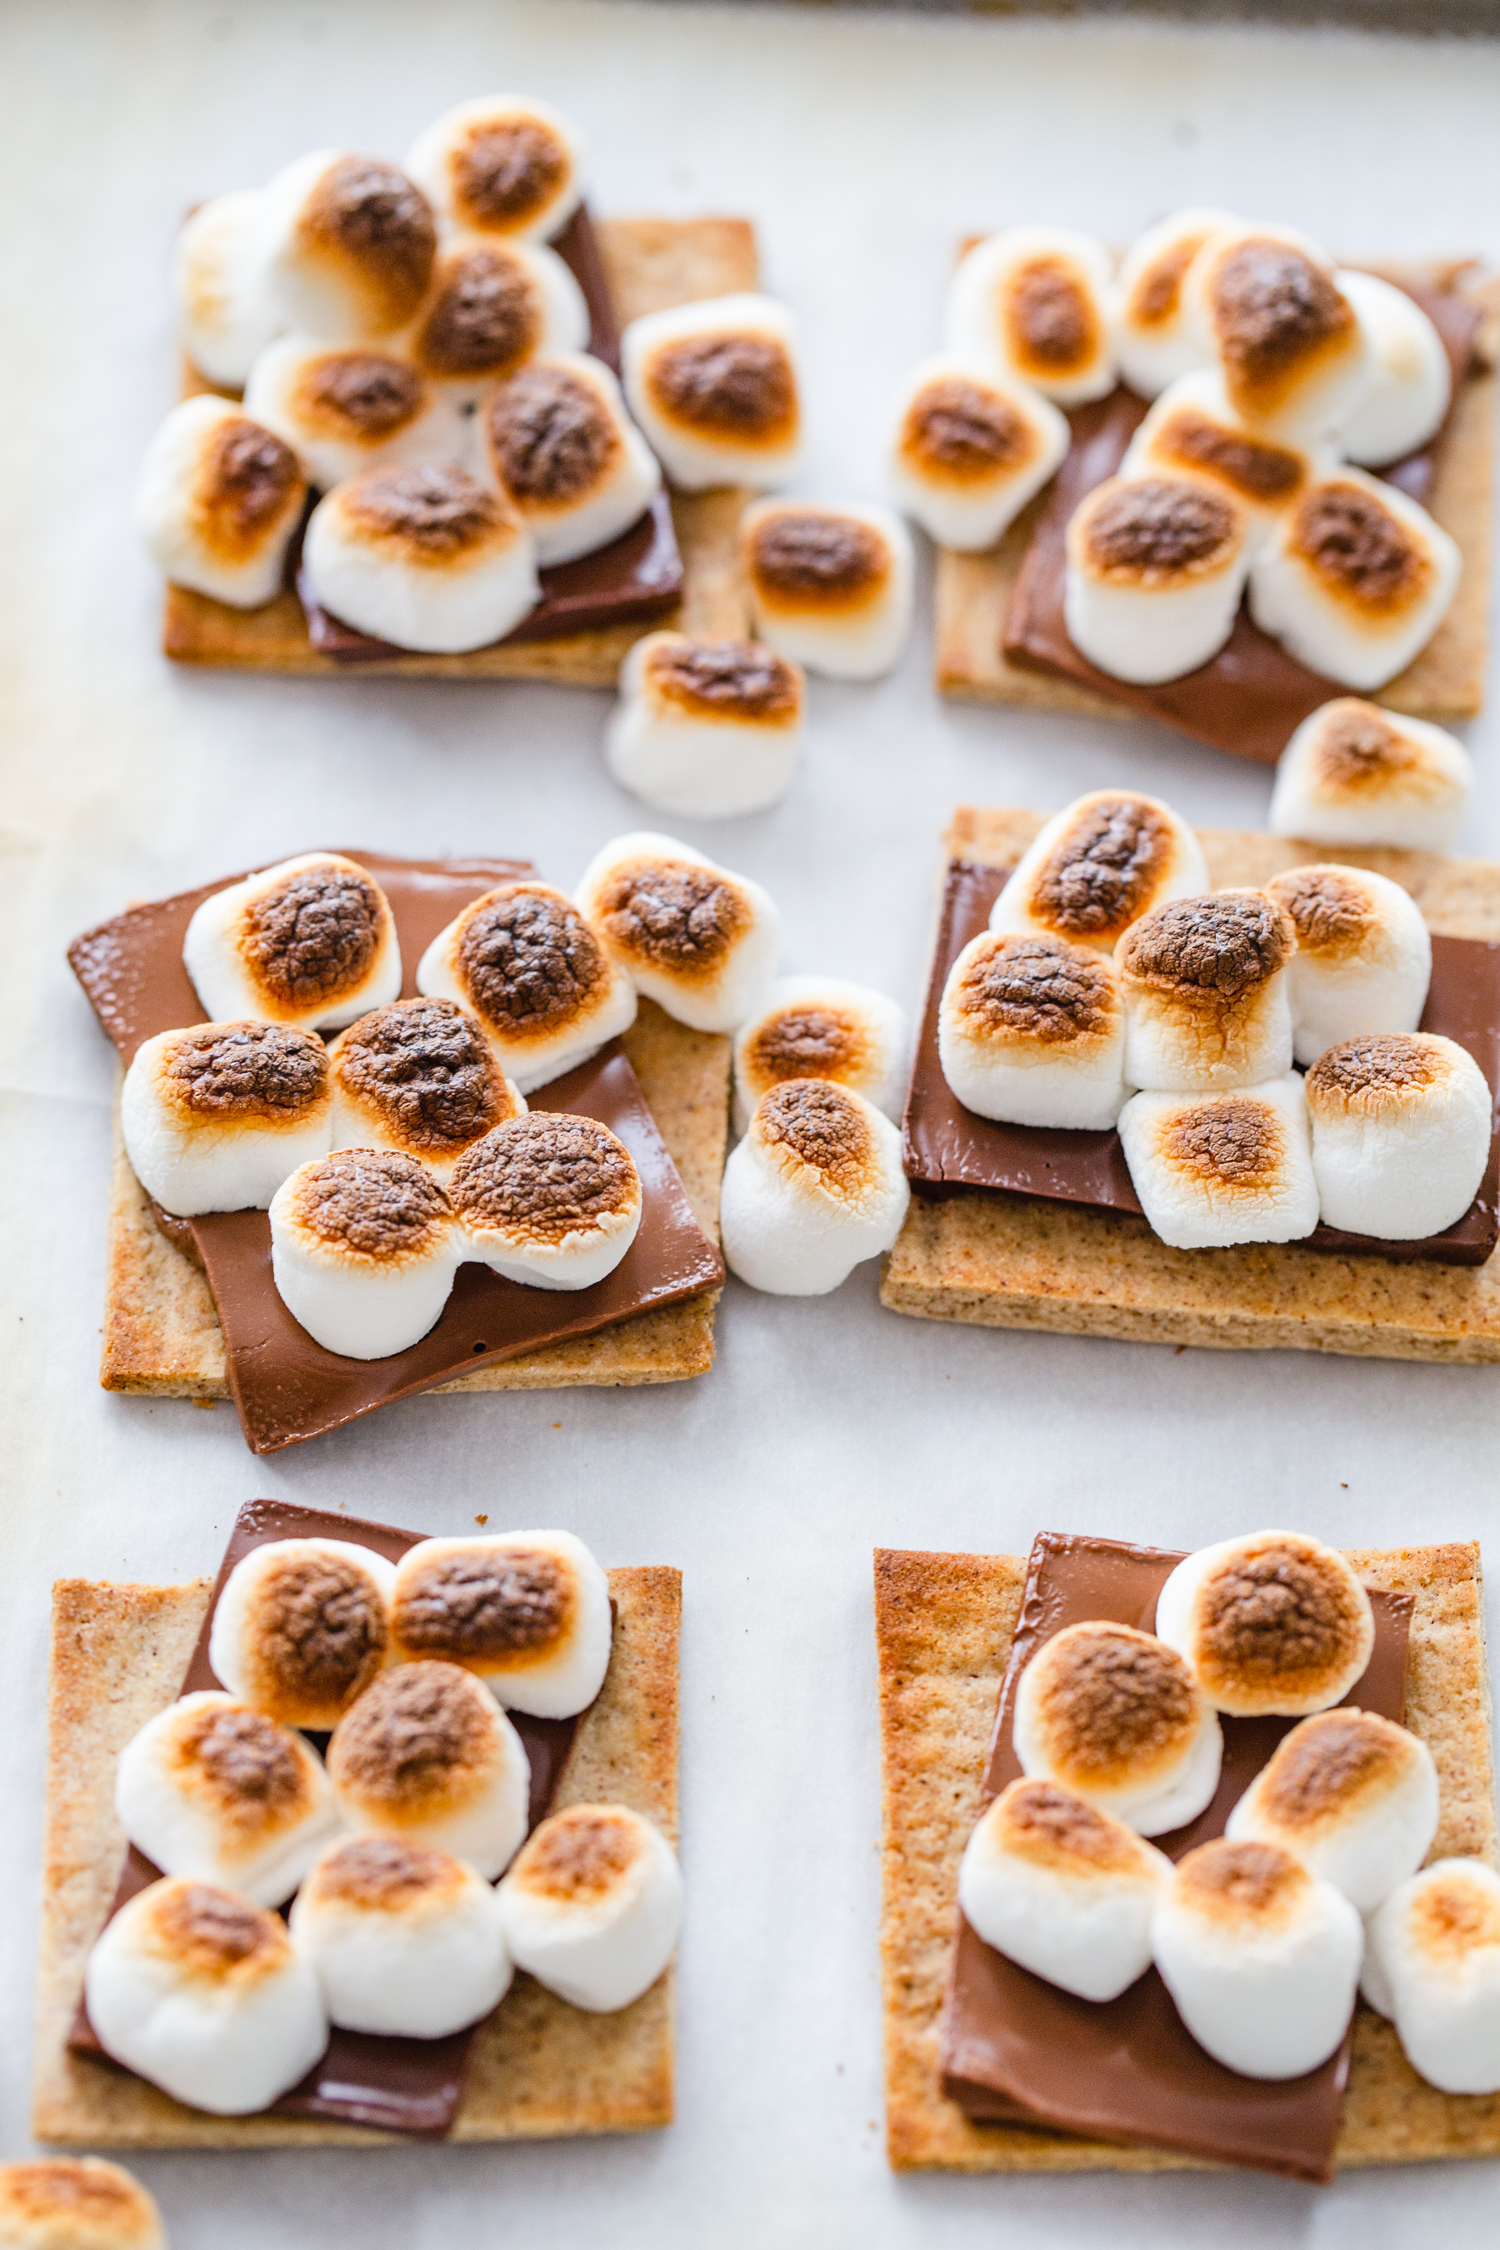 tray of toasted marshmallow smores